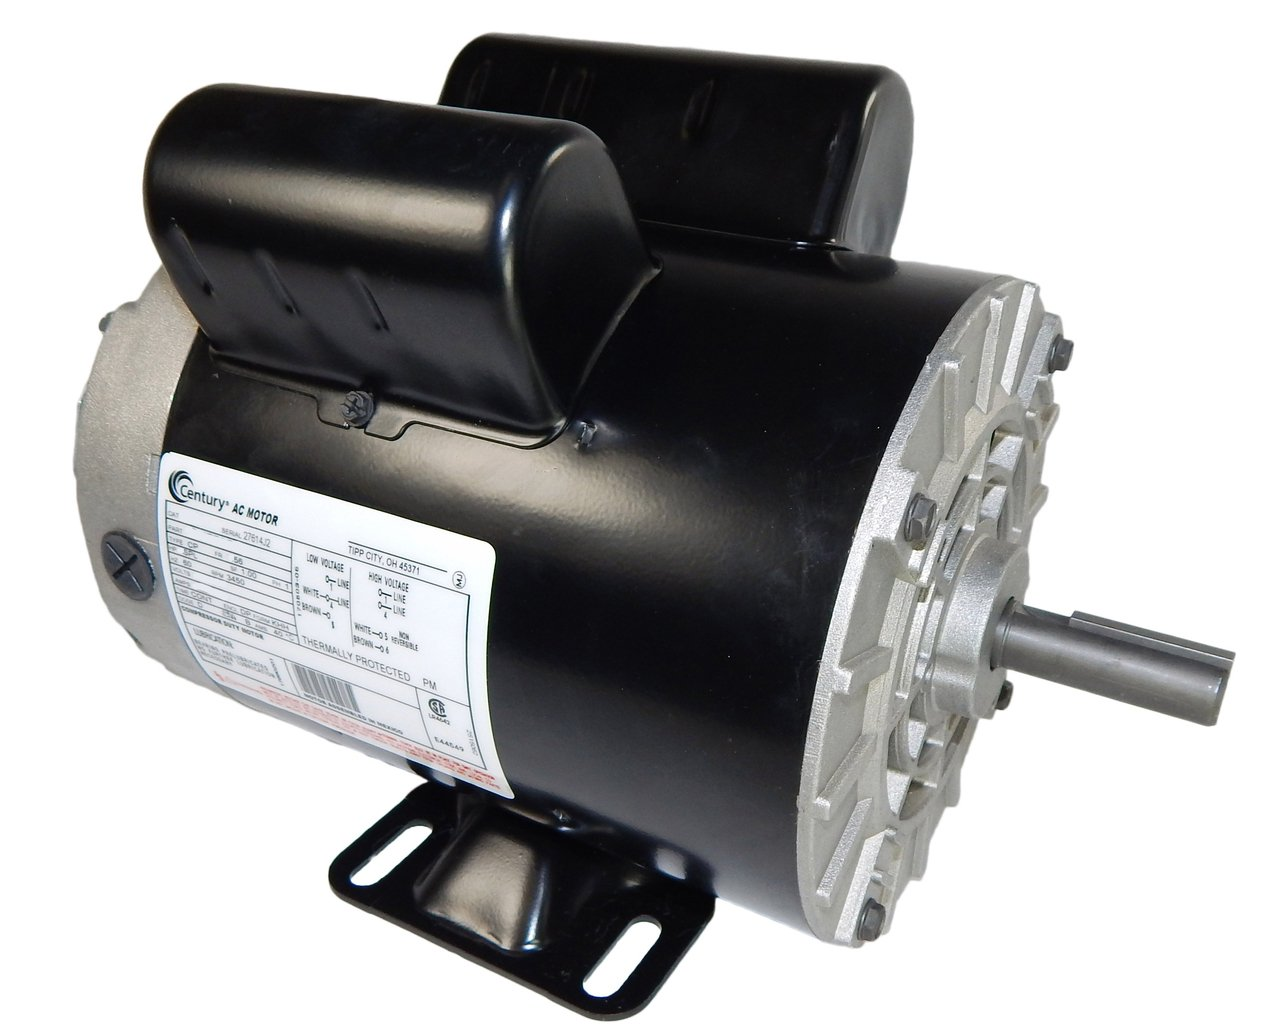 Dayton Lr22132  pressor Motor Wiring Diagram further 361755874974 together with Doerr Motor Cross Reference additionally Search together with Emerson Air  pressor Motor Wiring Diagram. on lr22132 compressor motors